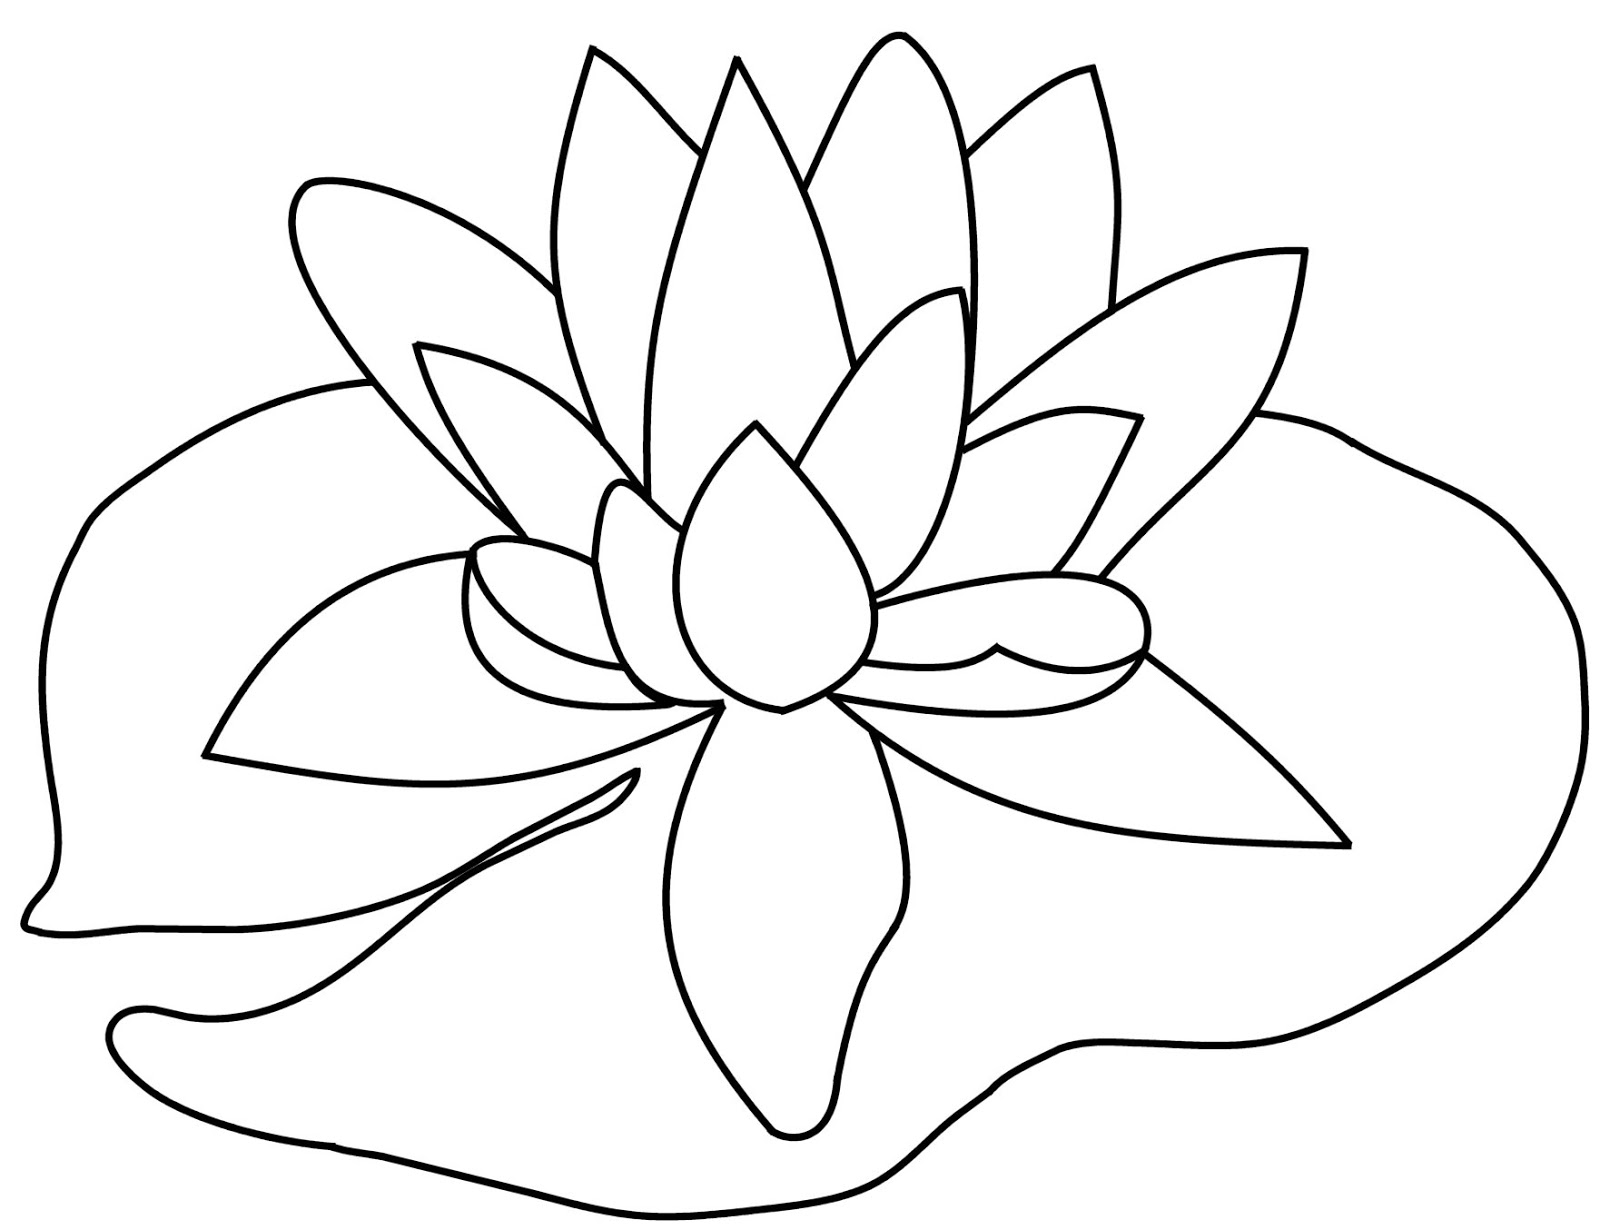 Frog On Lily Pad Drawing at GetDrawings.com | Free for personal use ...